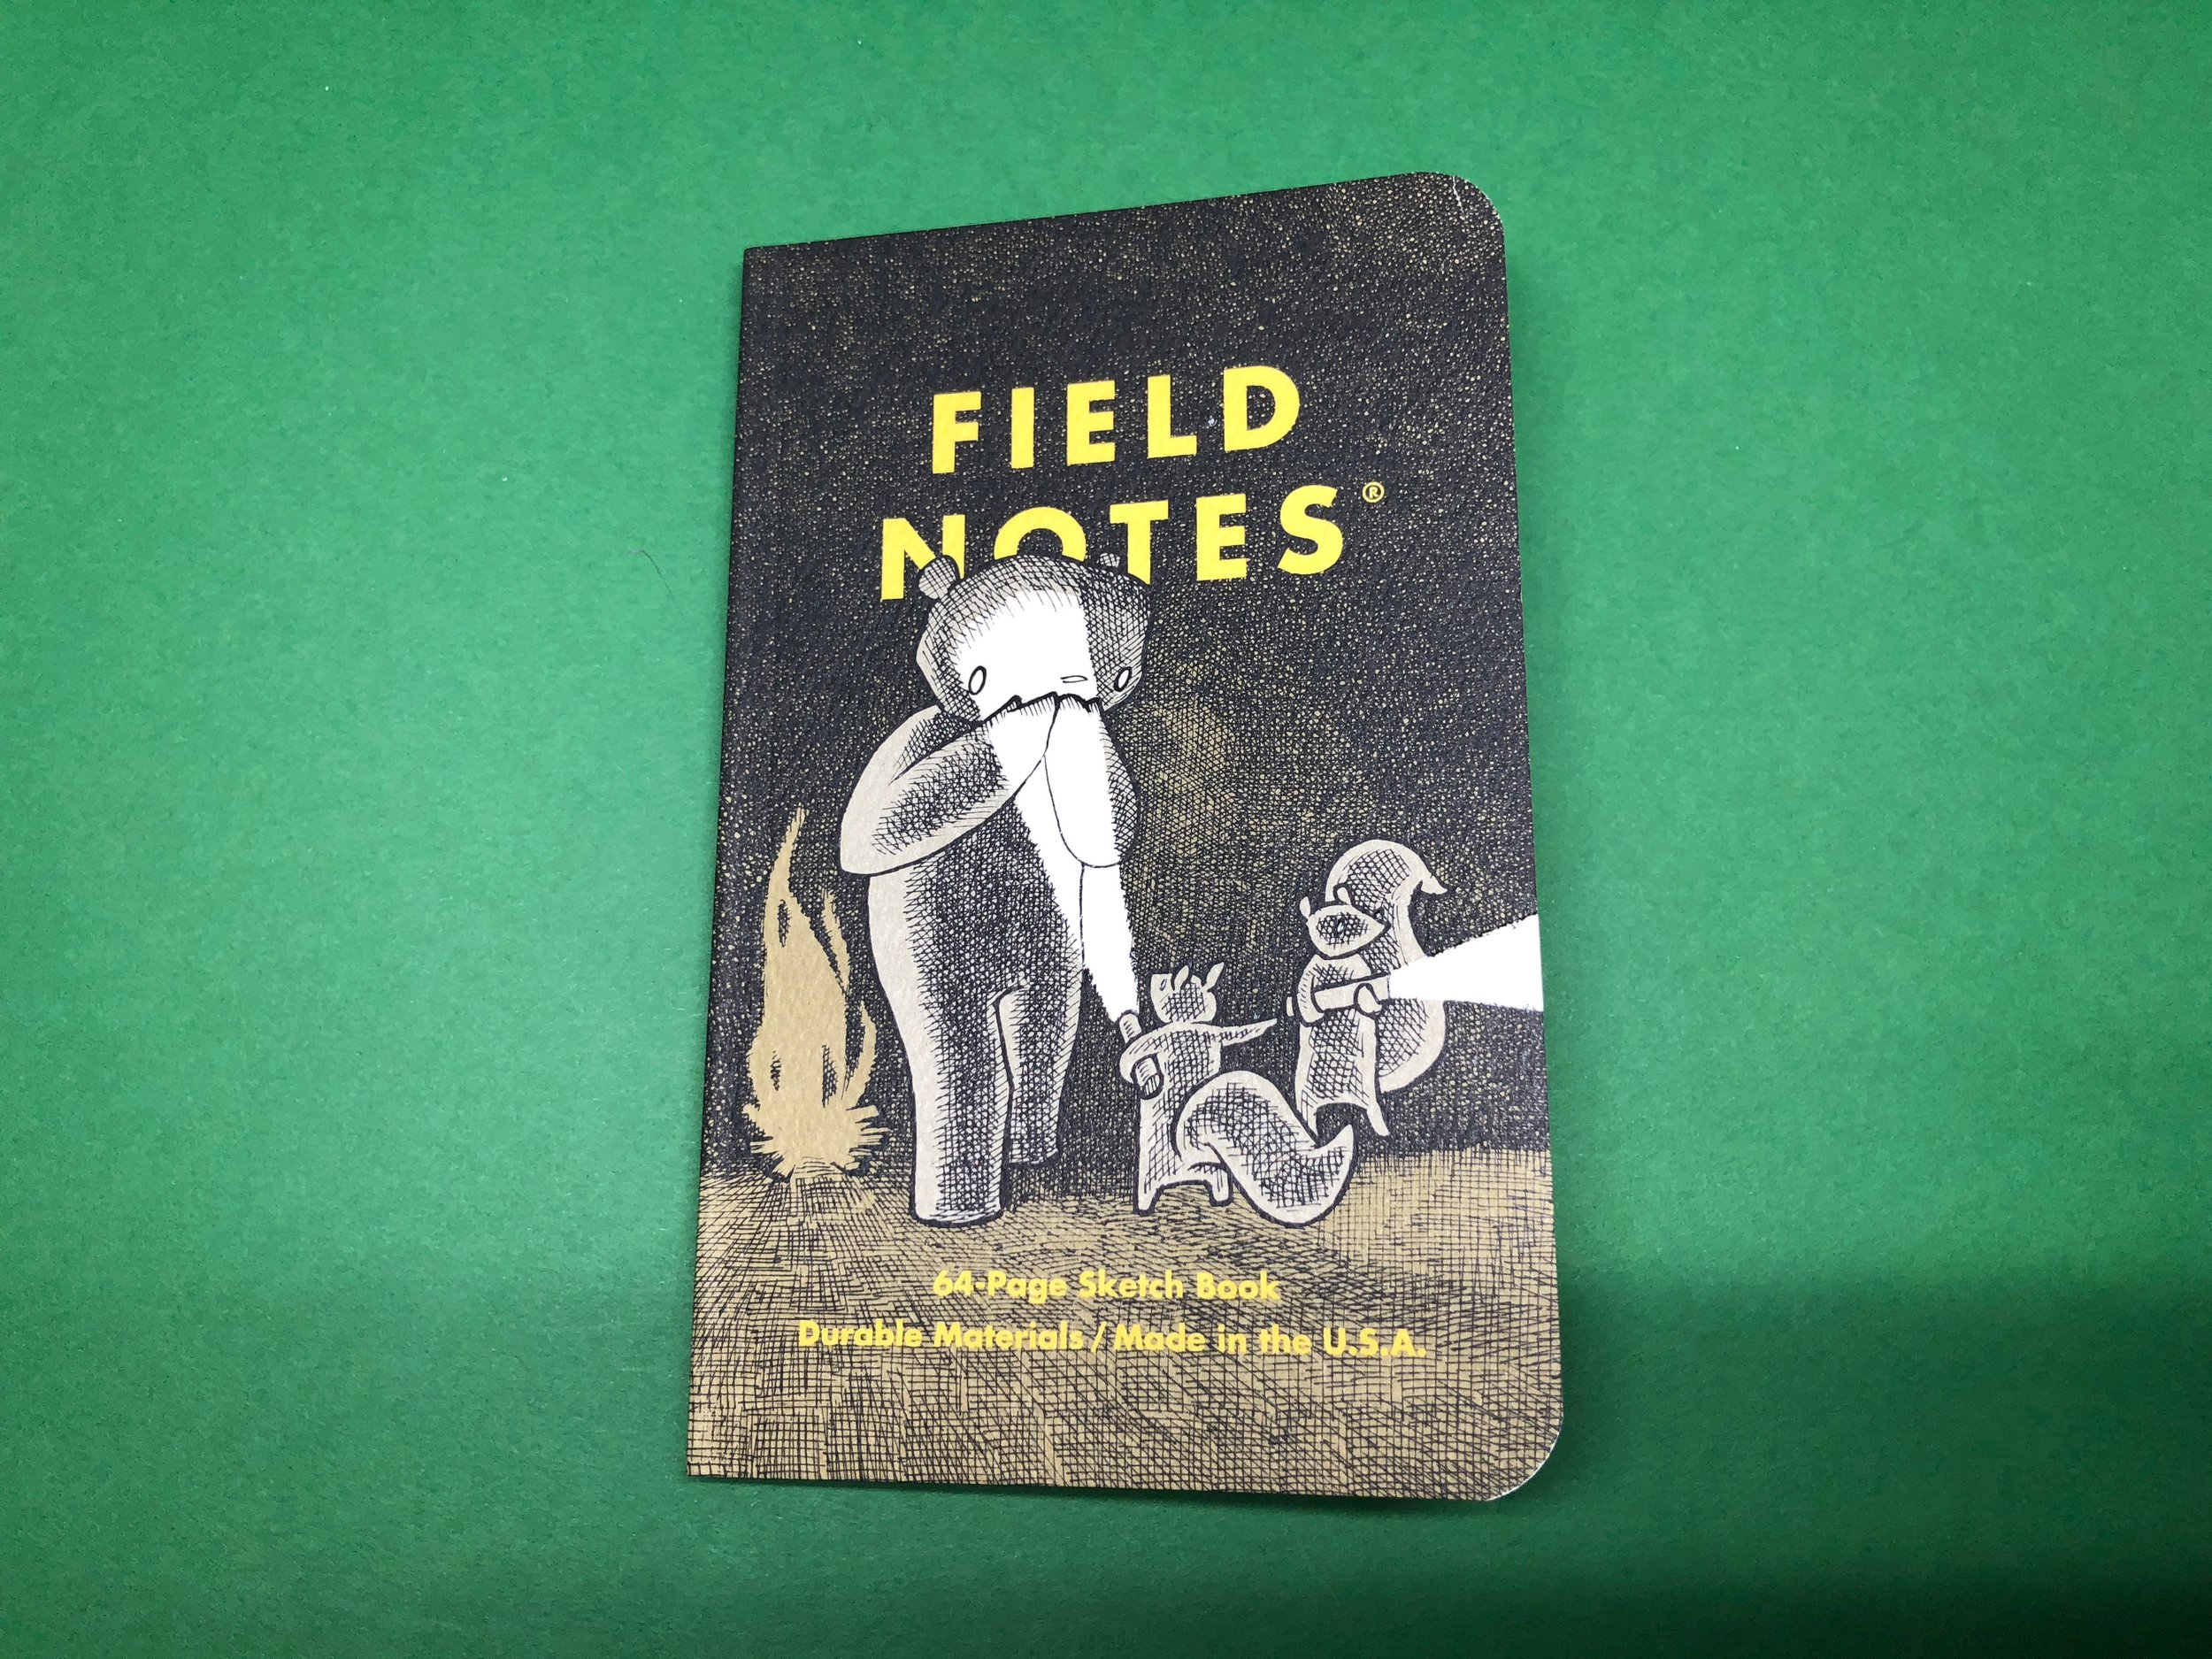 field-notes-haxley-3.jpg